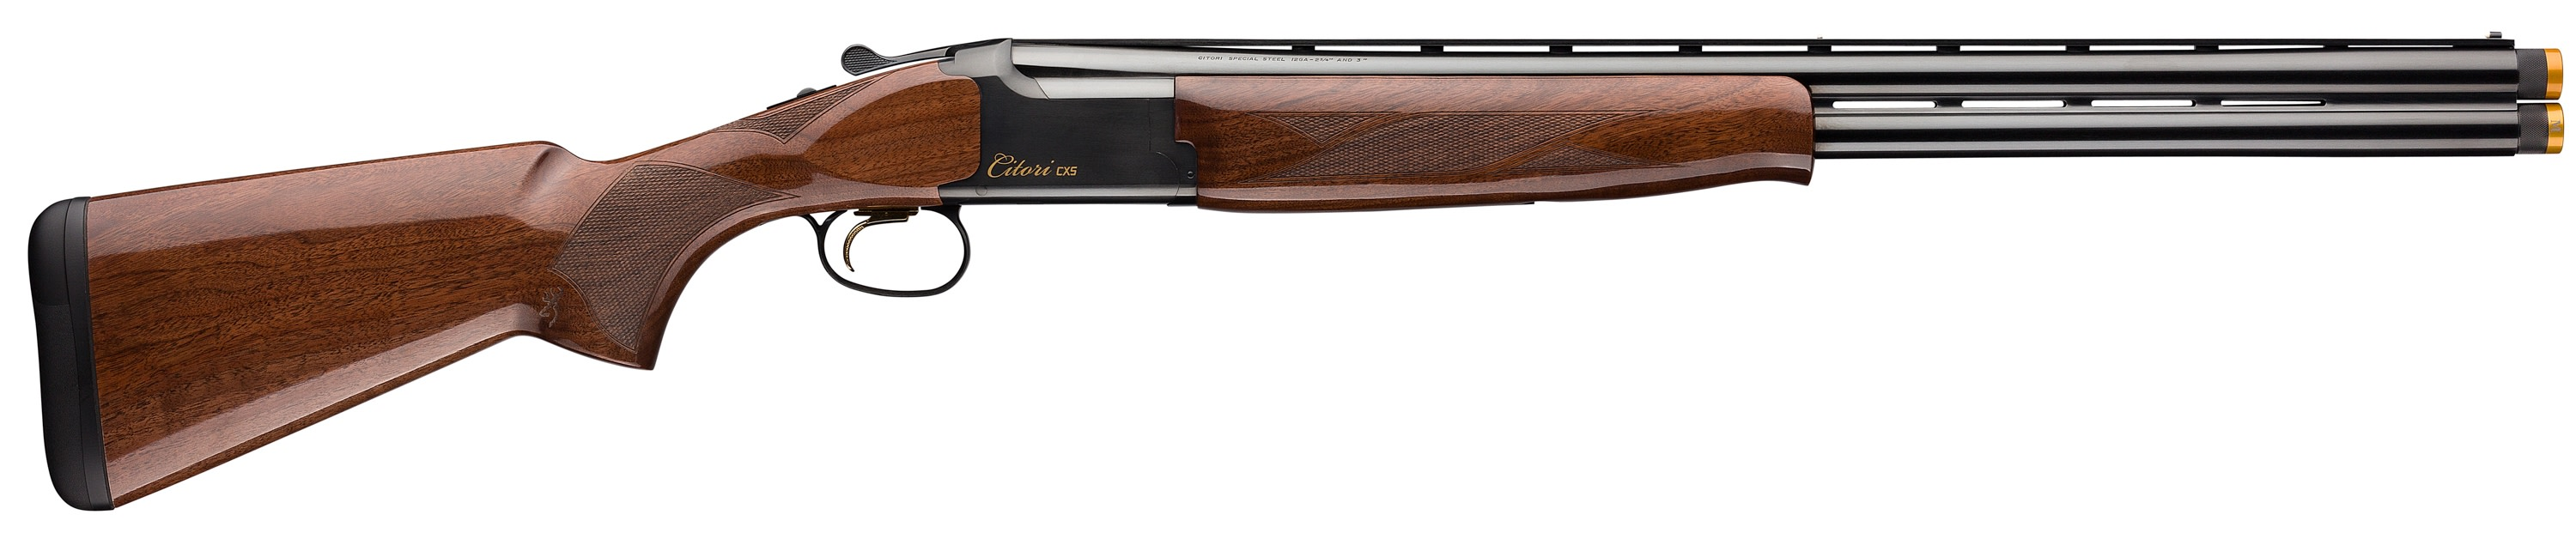 Browning Citori CXS Micro Over/Under 3'' 20 Gauge 26'' Blued Steel - American Walnut